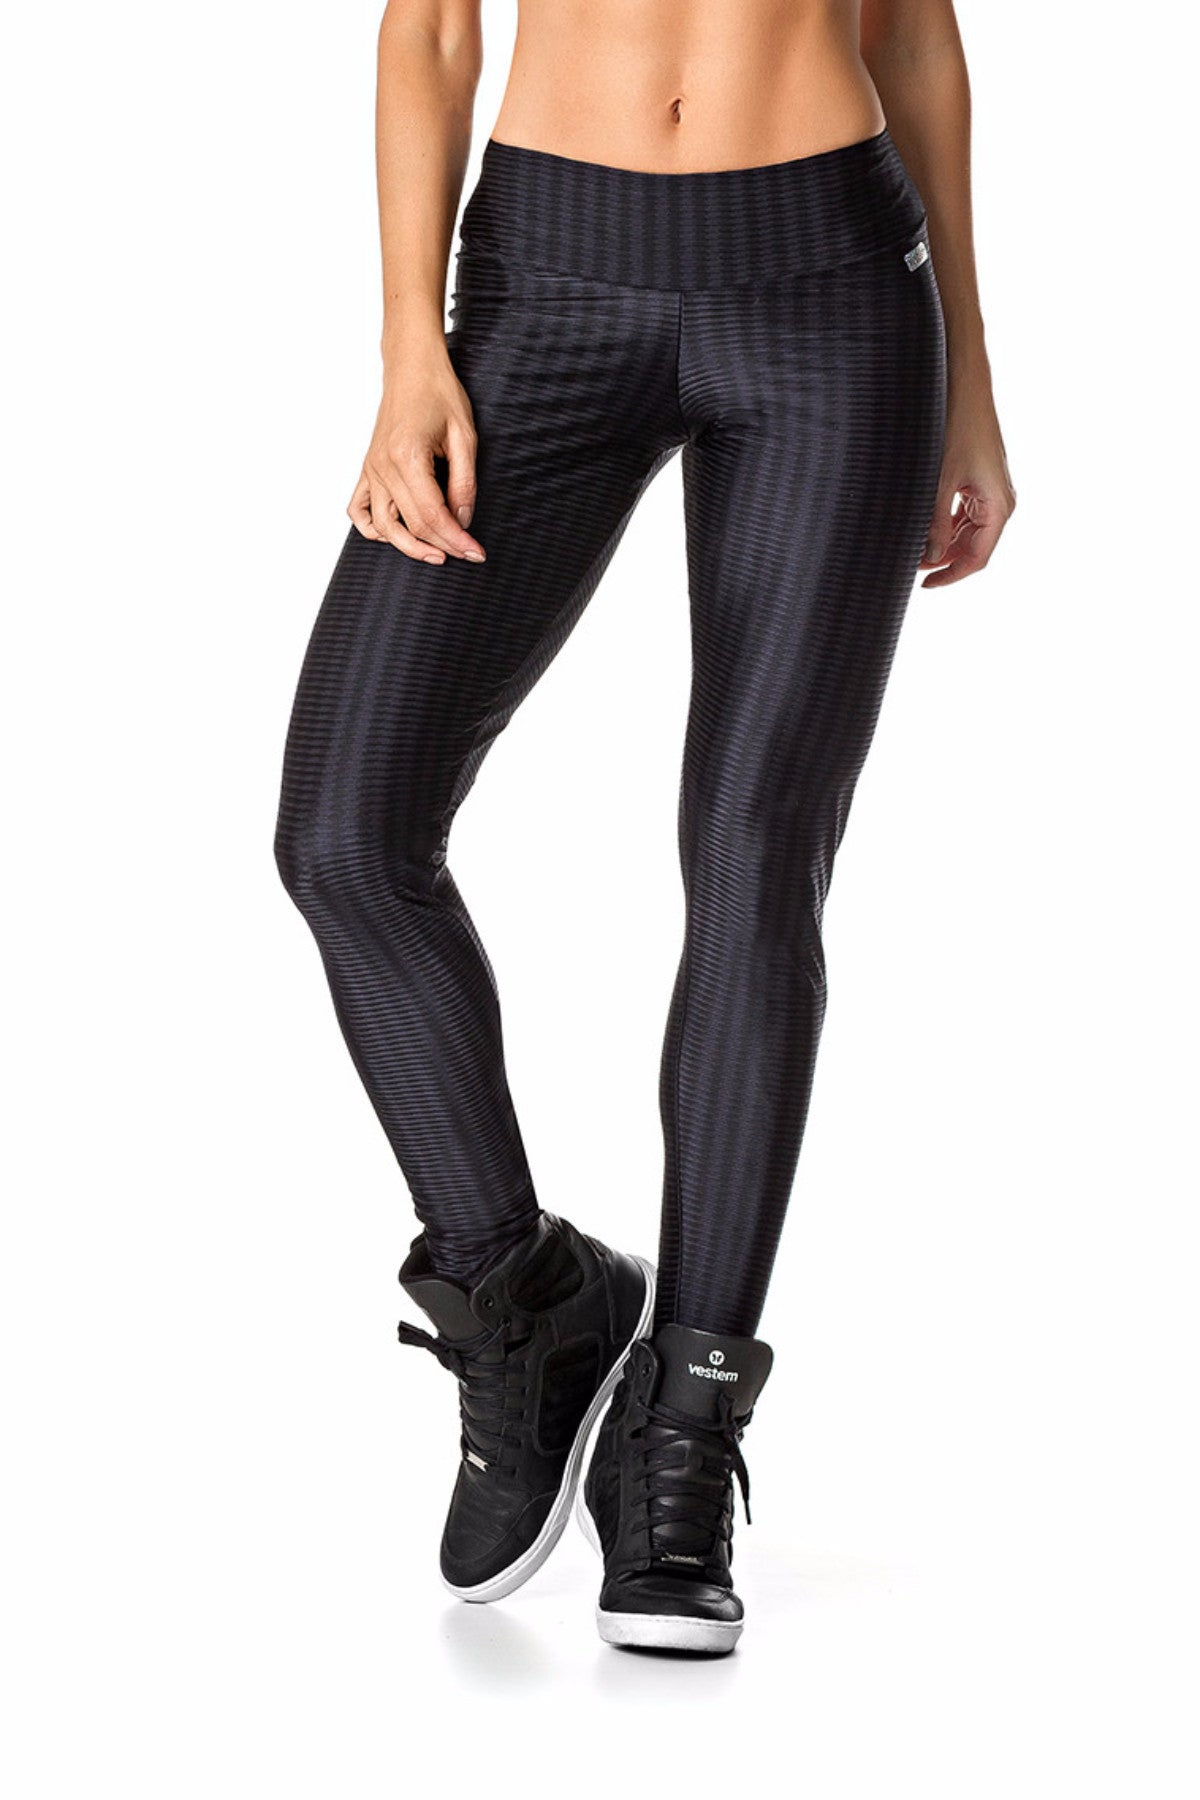 Black Shiny Compressive Leggings